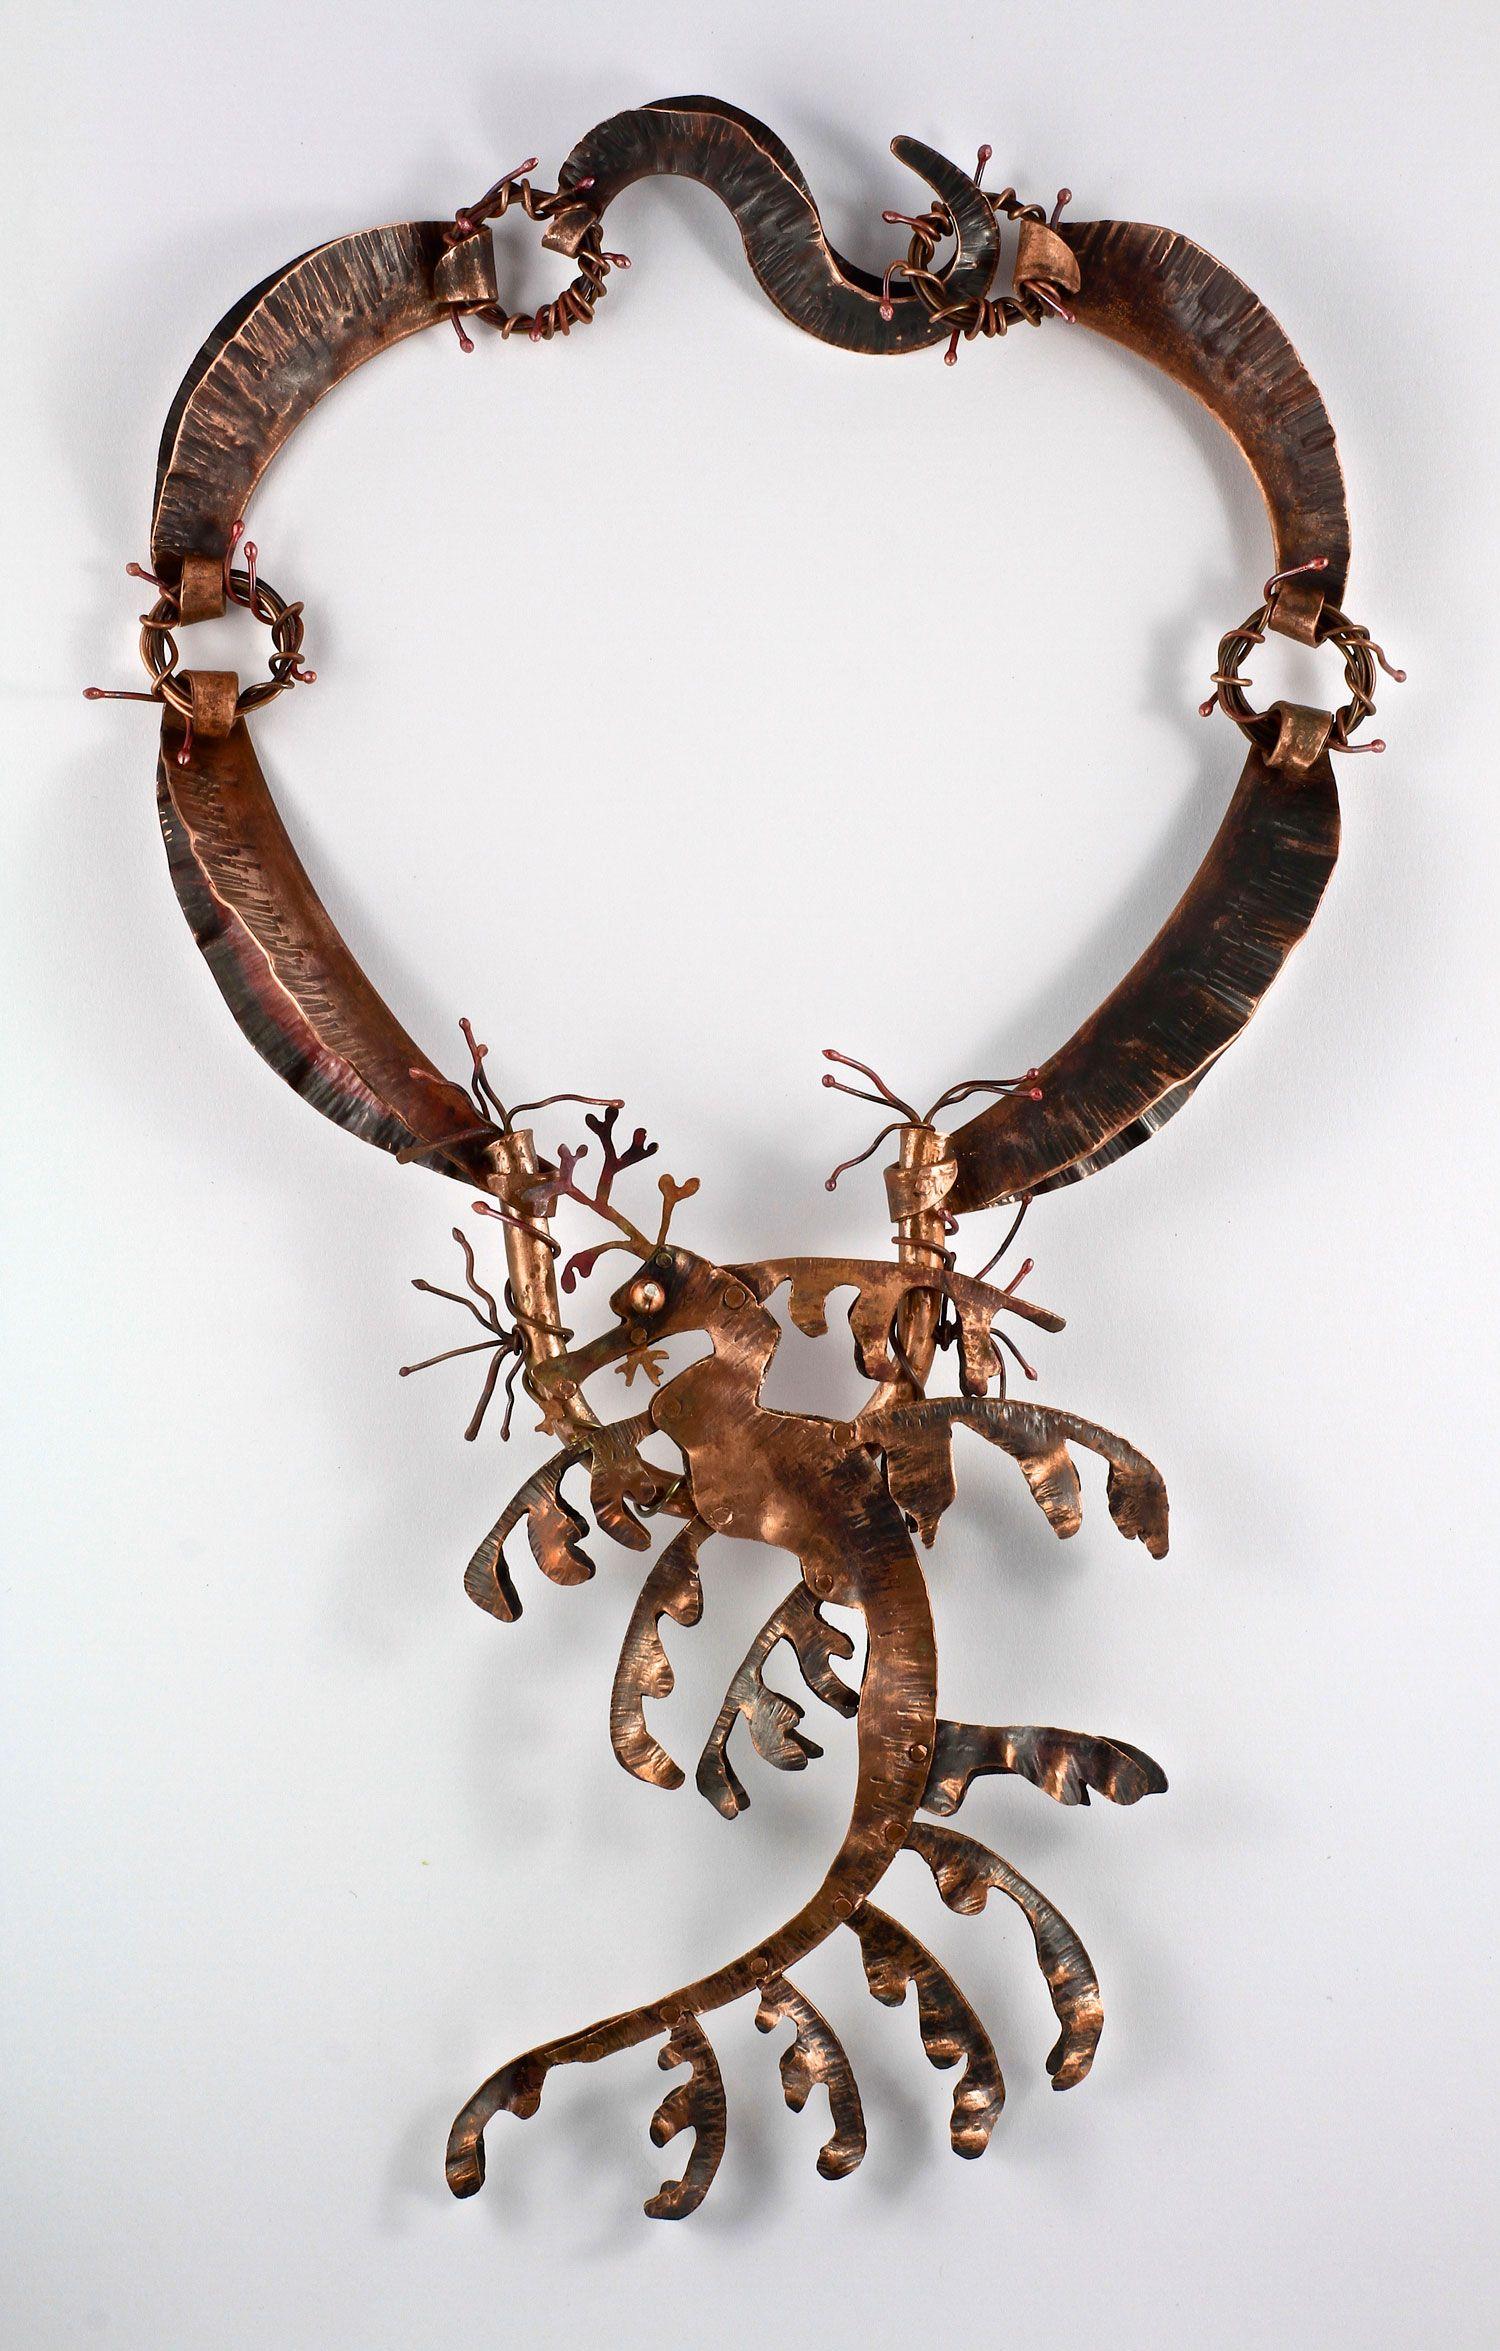 Leafy Sea Dragon - my entry in the Lewton-Brain Foldform competition 2013.